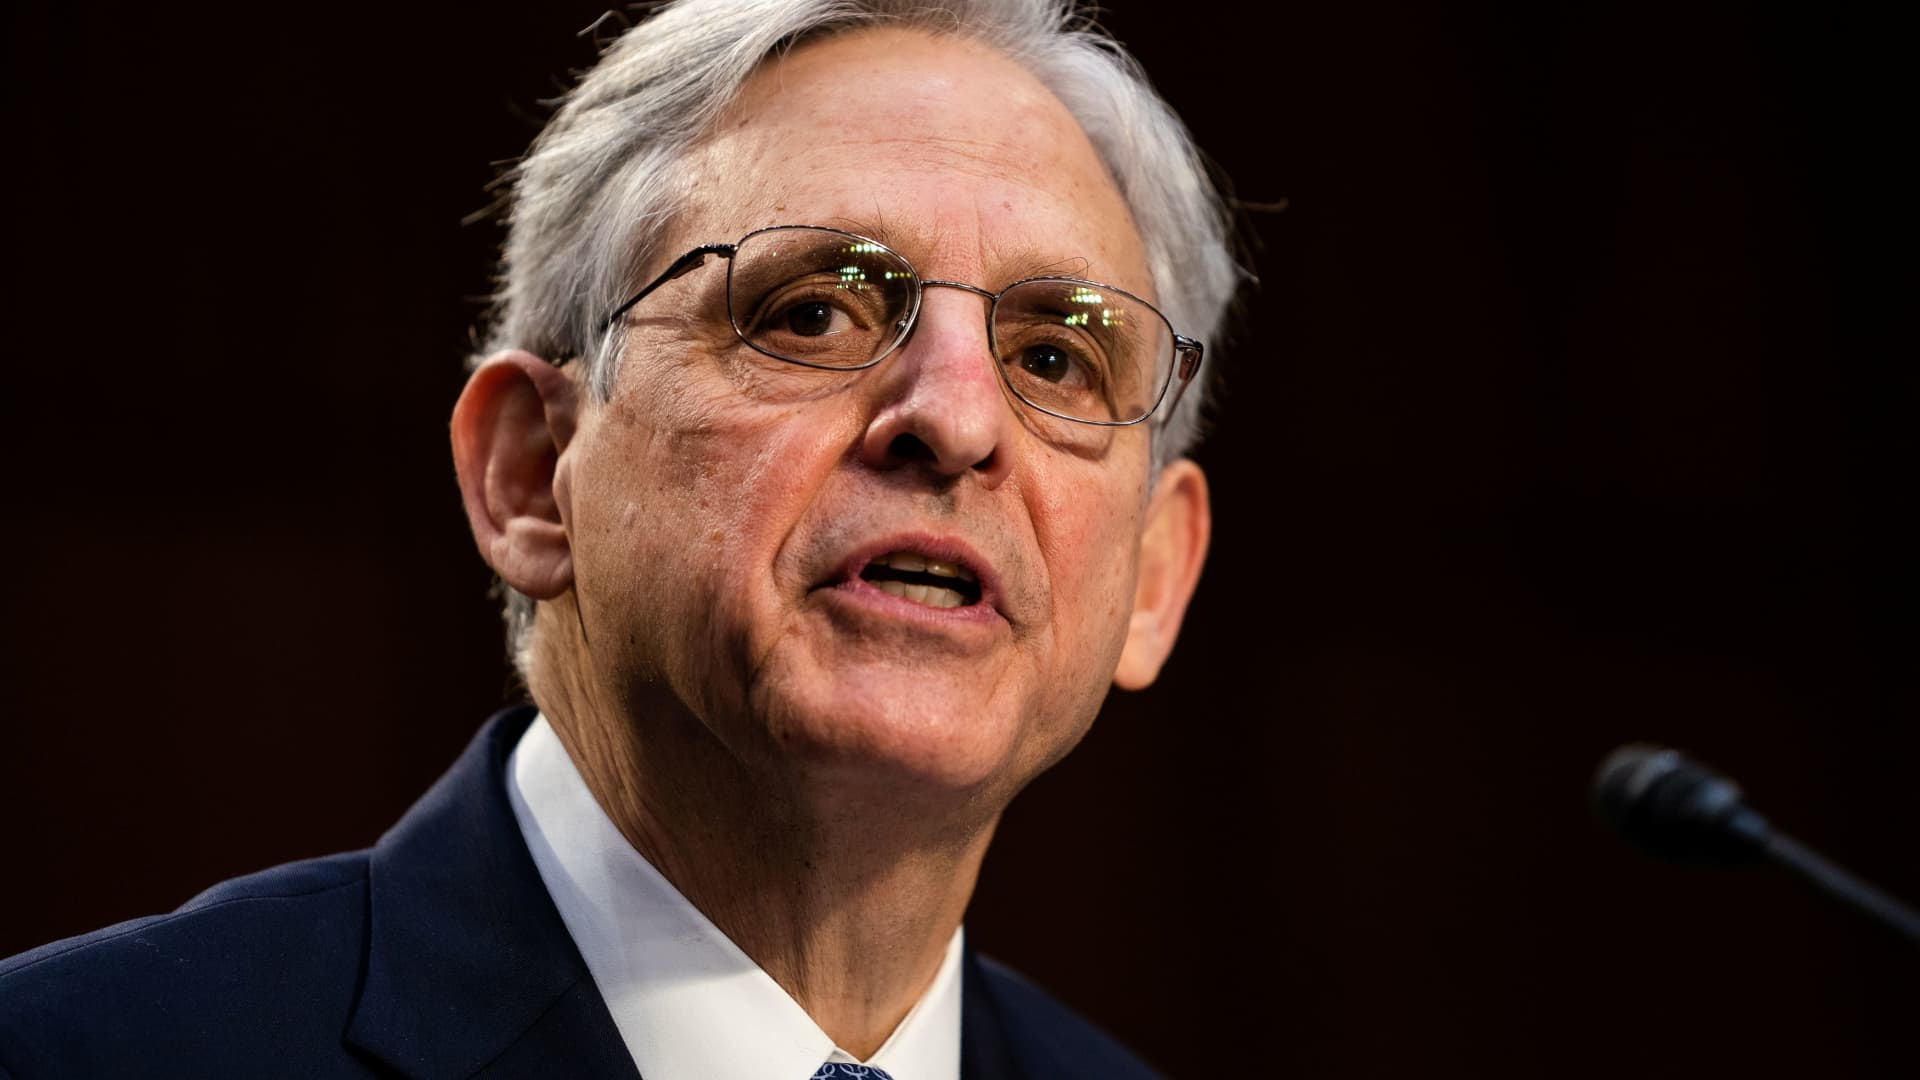 Nominee for U.S. Attorney General, Merrick Garland, during his swearing in confirmation hearing before the Senate Judiciary Committee, Washington, DC, February 22, 2021.